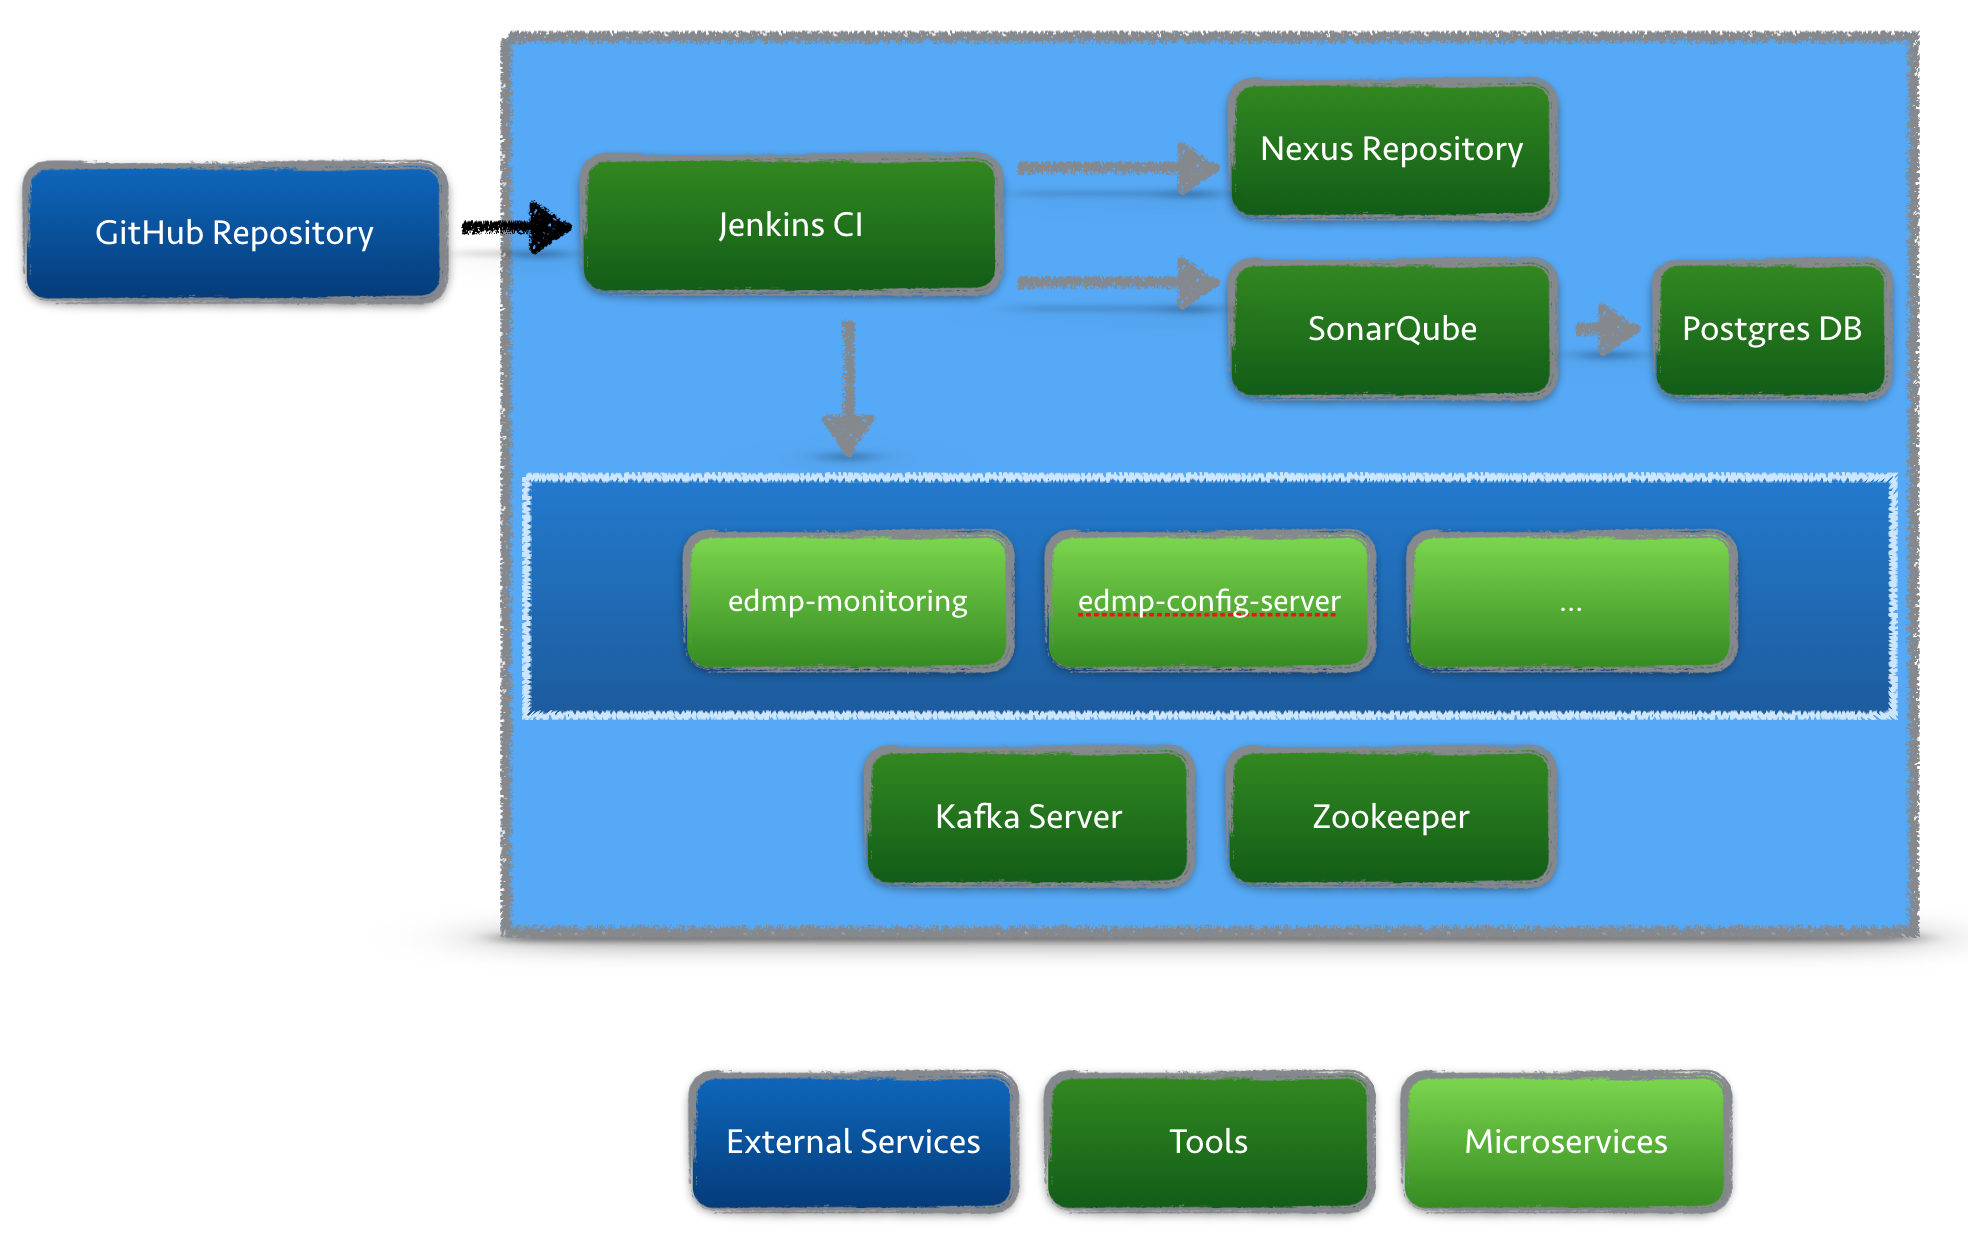 GitHub - codecentric/event-driven-microservices-platform: Event